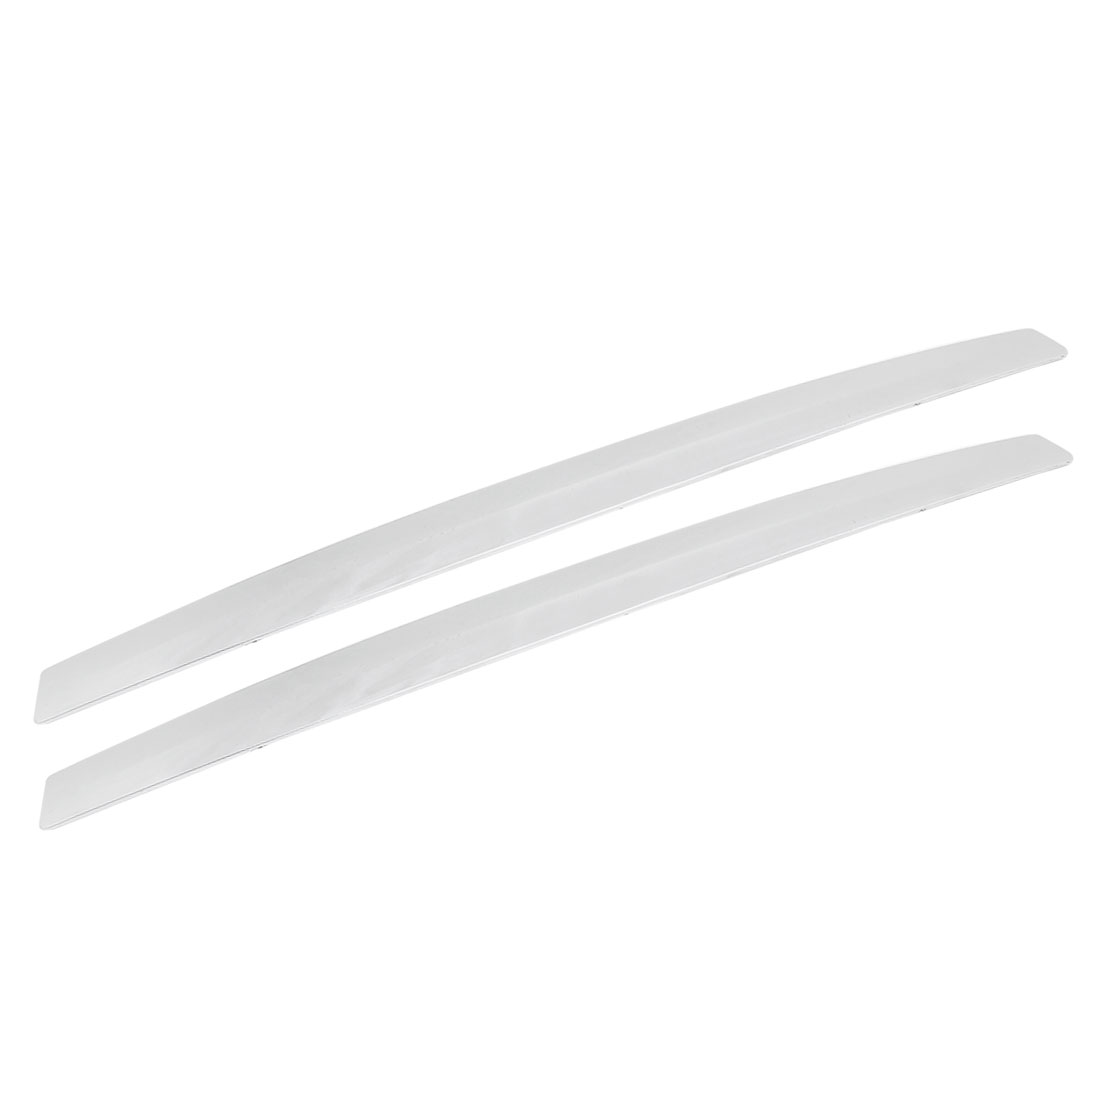 2 Pcs Silver Tone Universal Fit Car Edge Safety Bumper Protection Guard